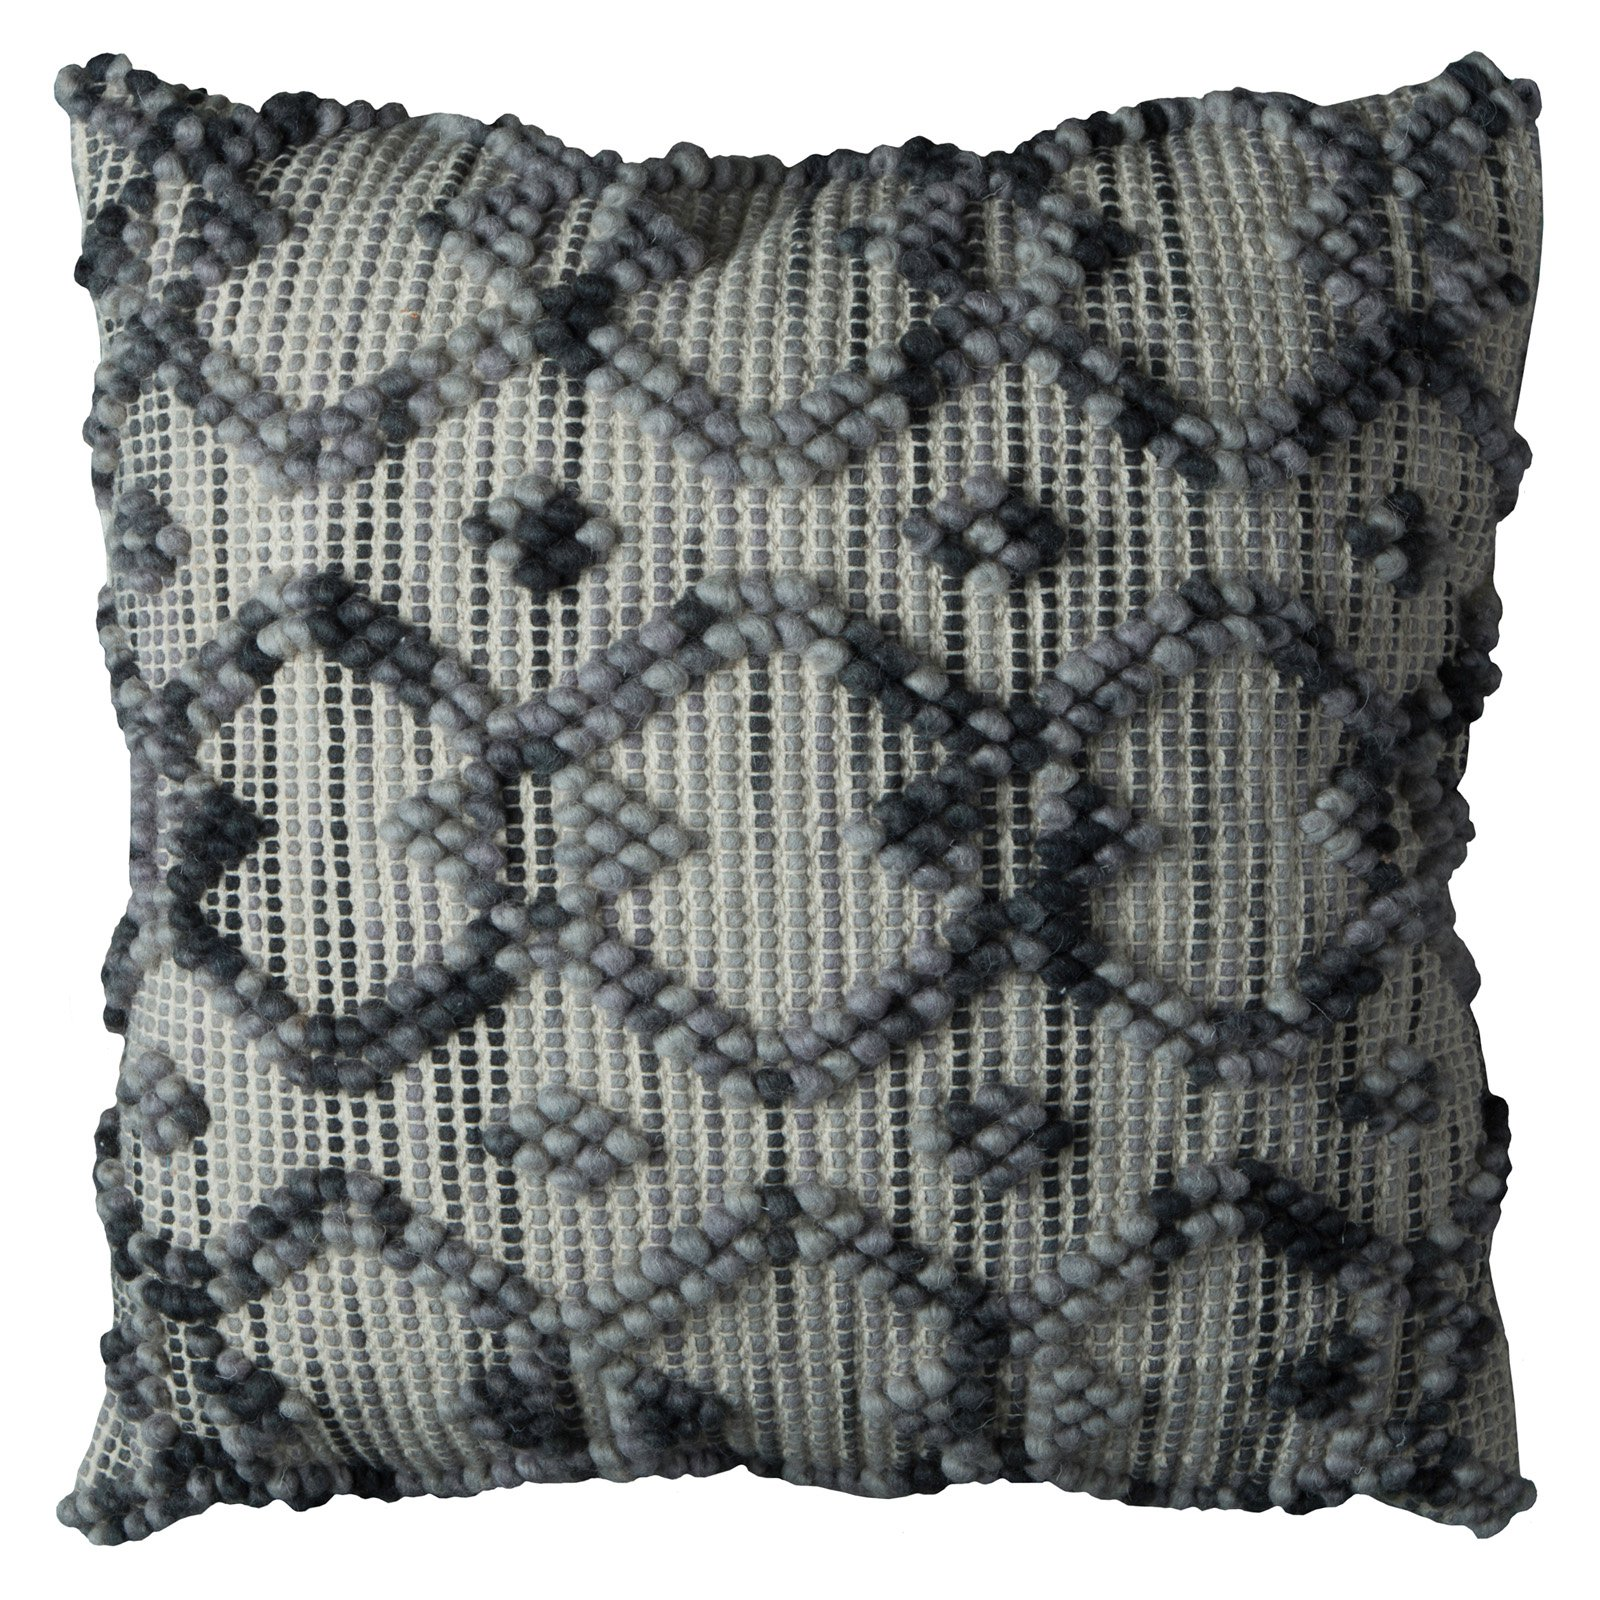 """Rizzy Home Decorative Poly Filled Throw Pillow Textured Interwined Diamonds 20""""X20"""" Dark Grey"""